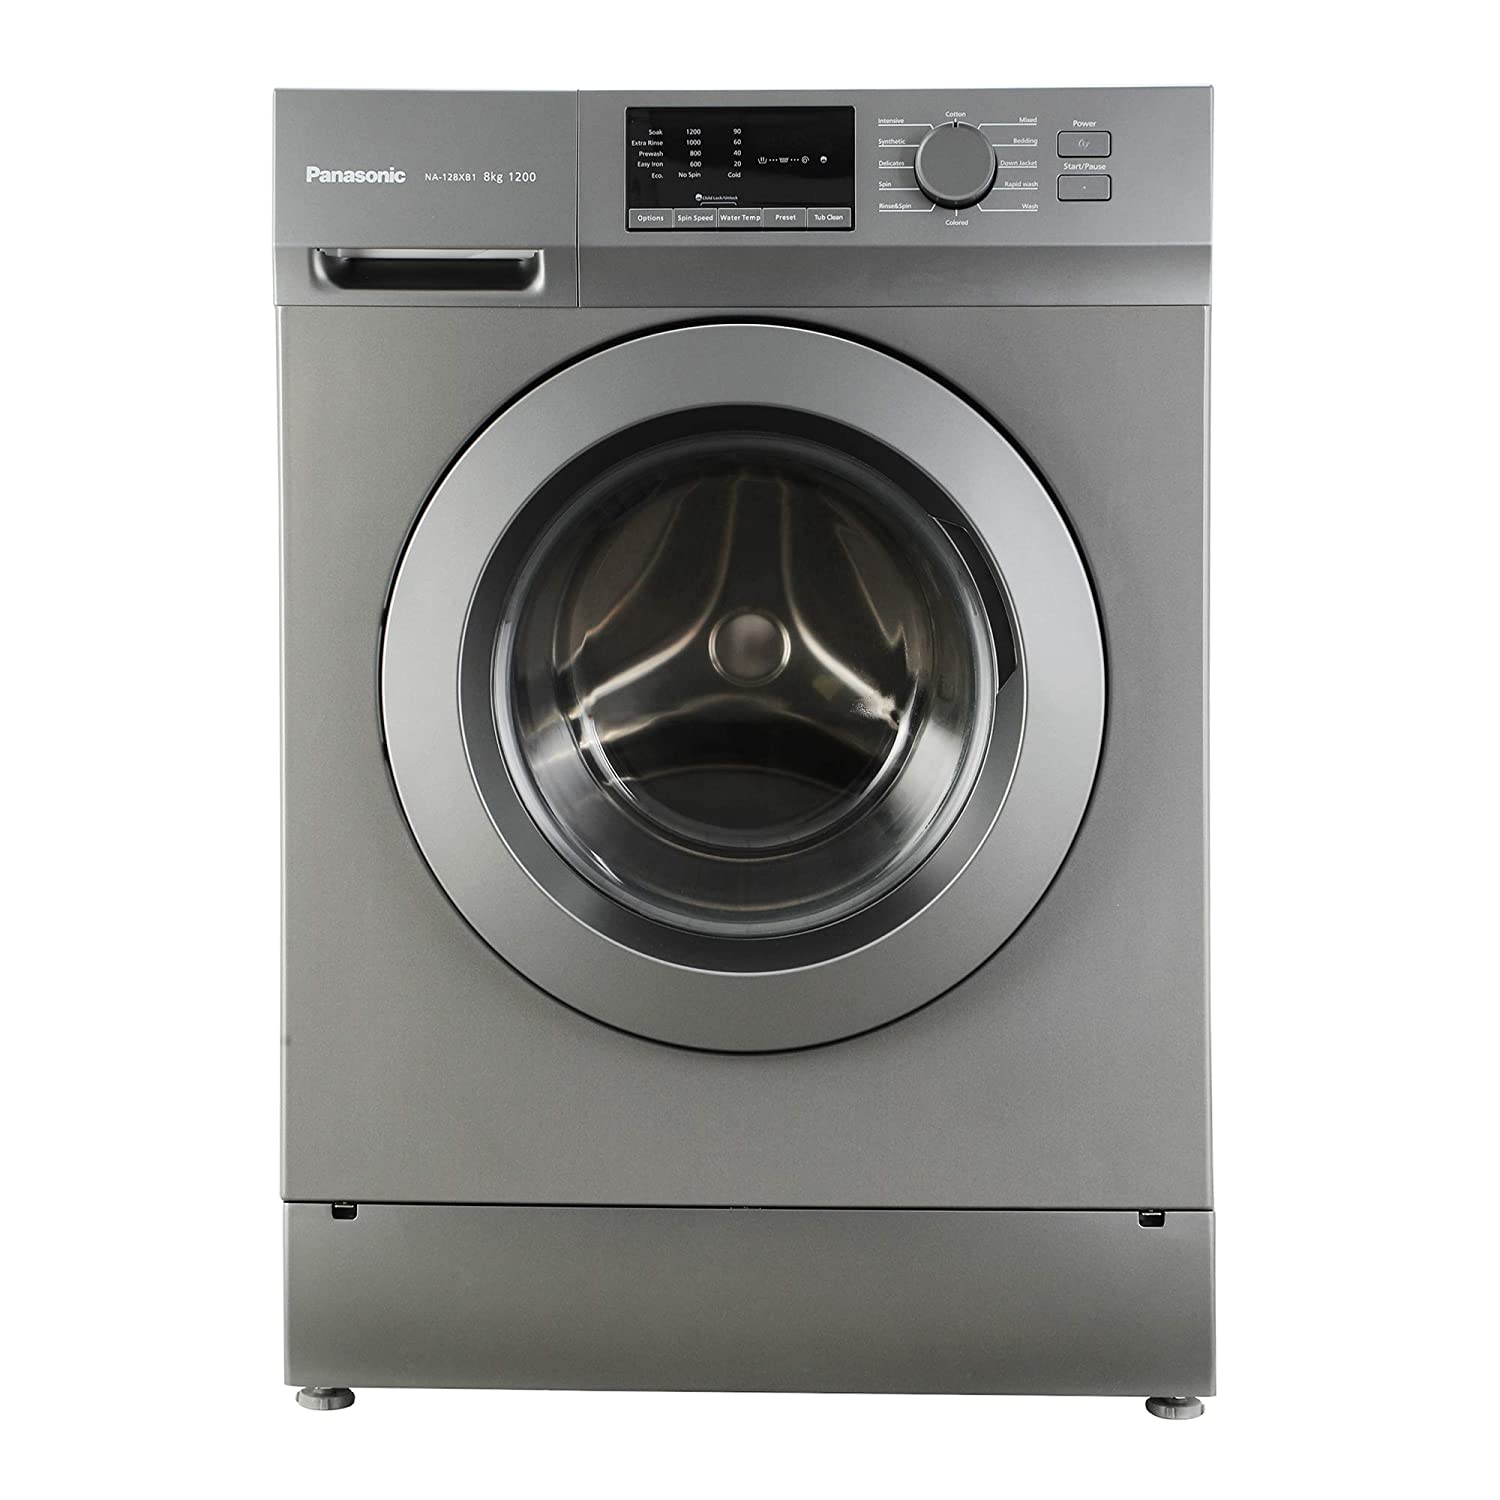 Panasonic 8 kg Fully-Automatic Front Loading Washing Machine (NA-128XB1L01, Silver, Inbuilt Heater)